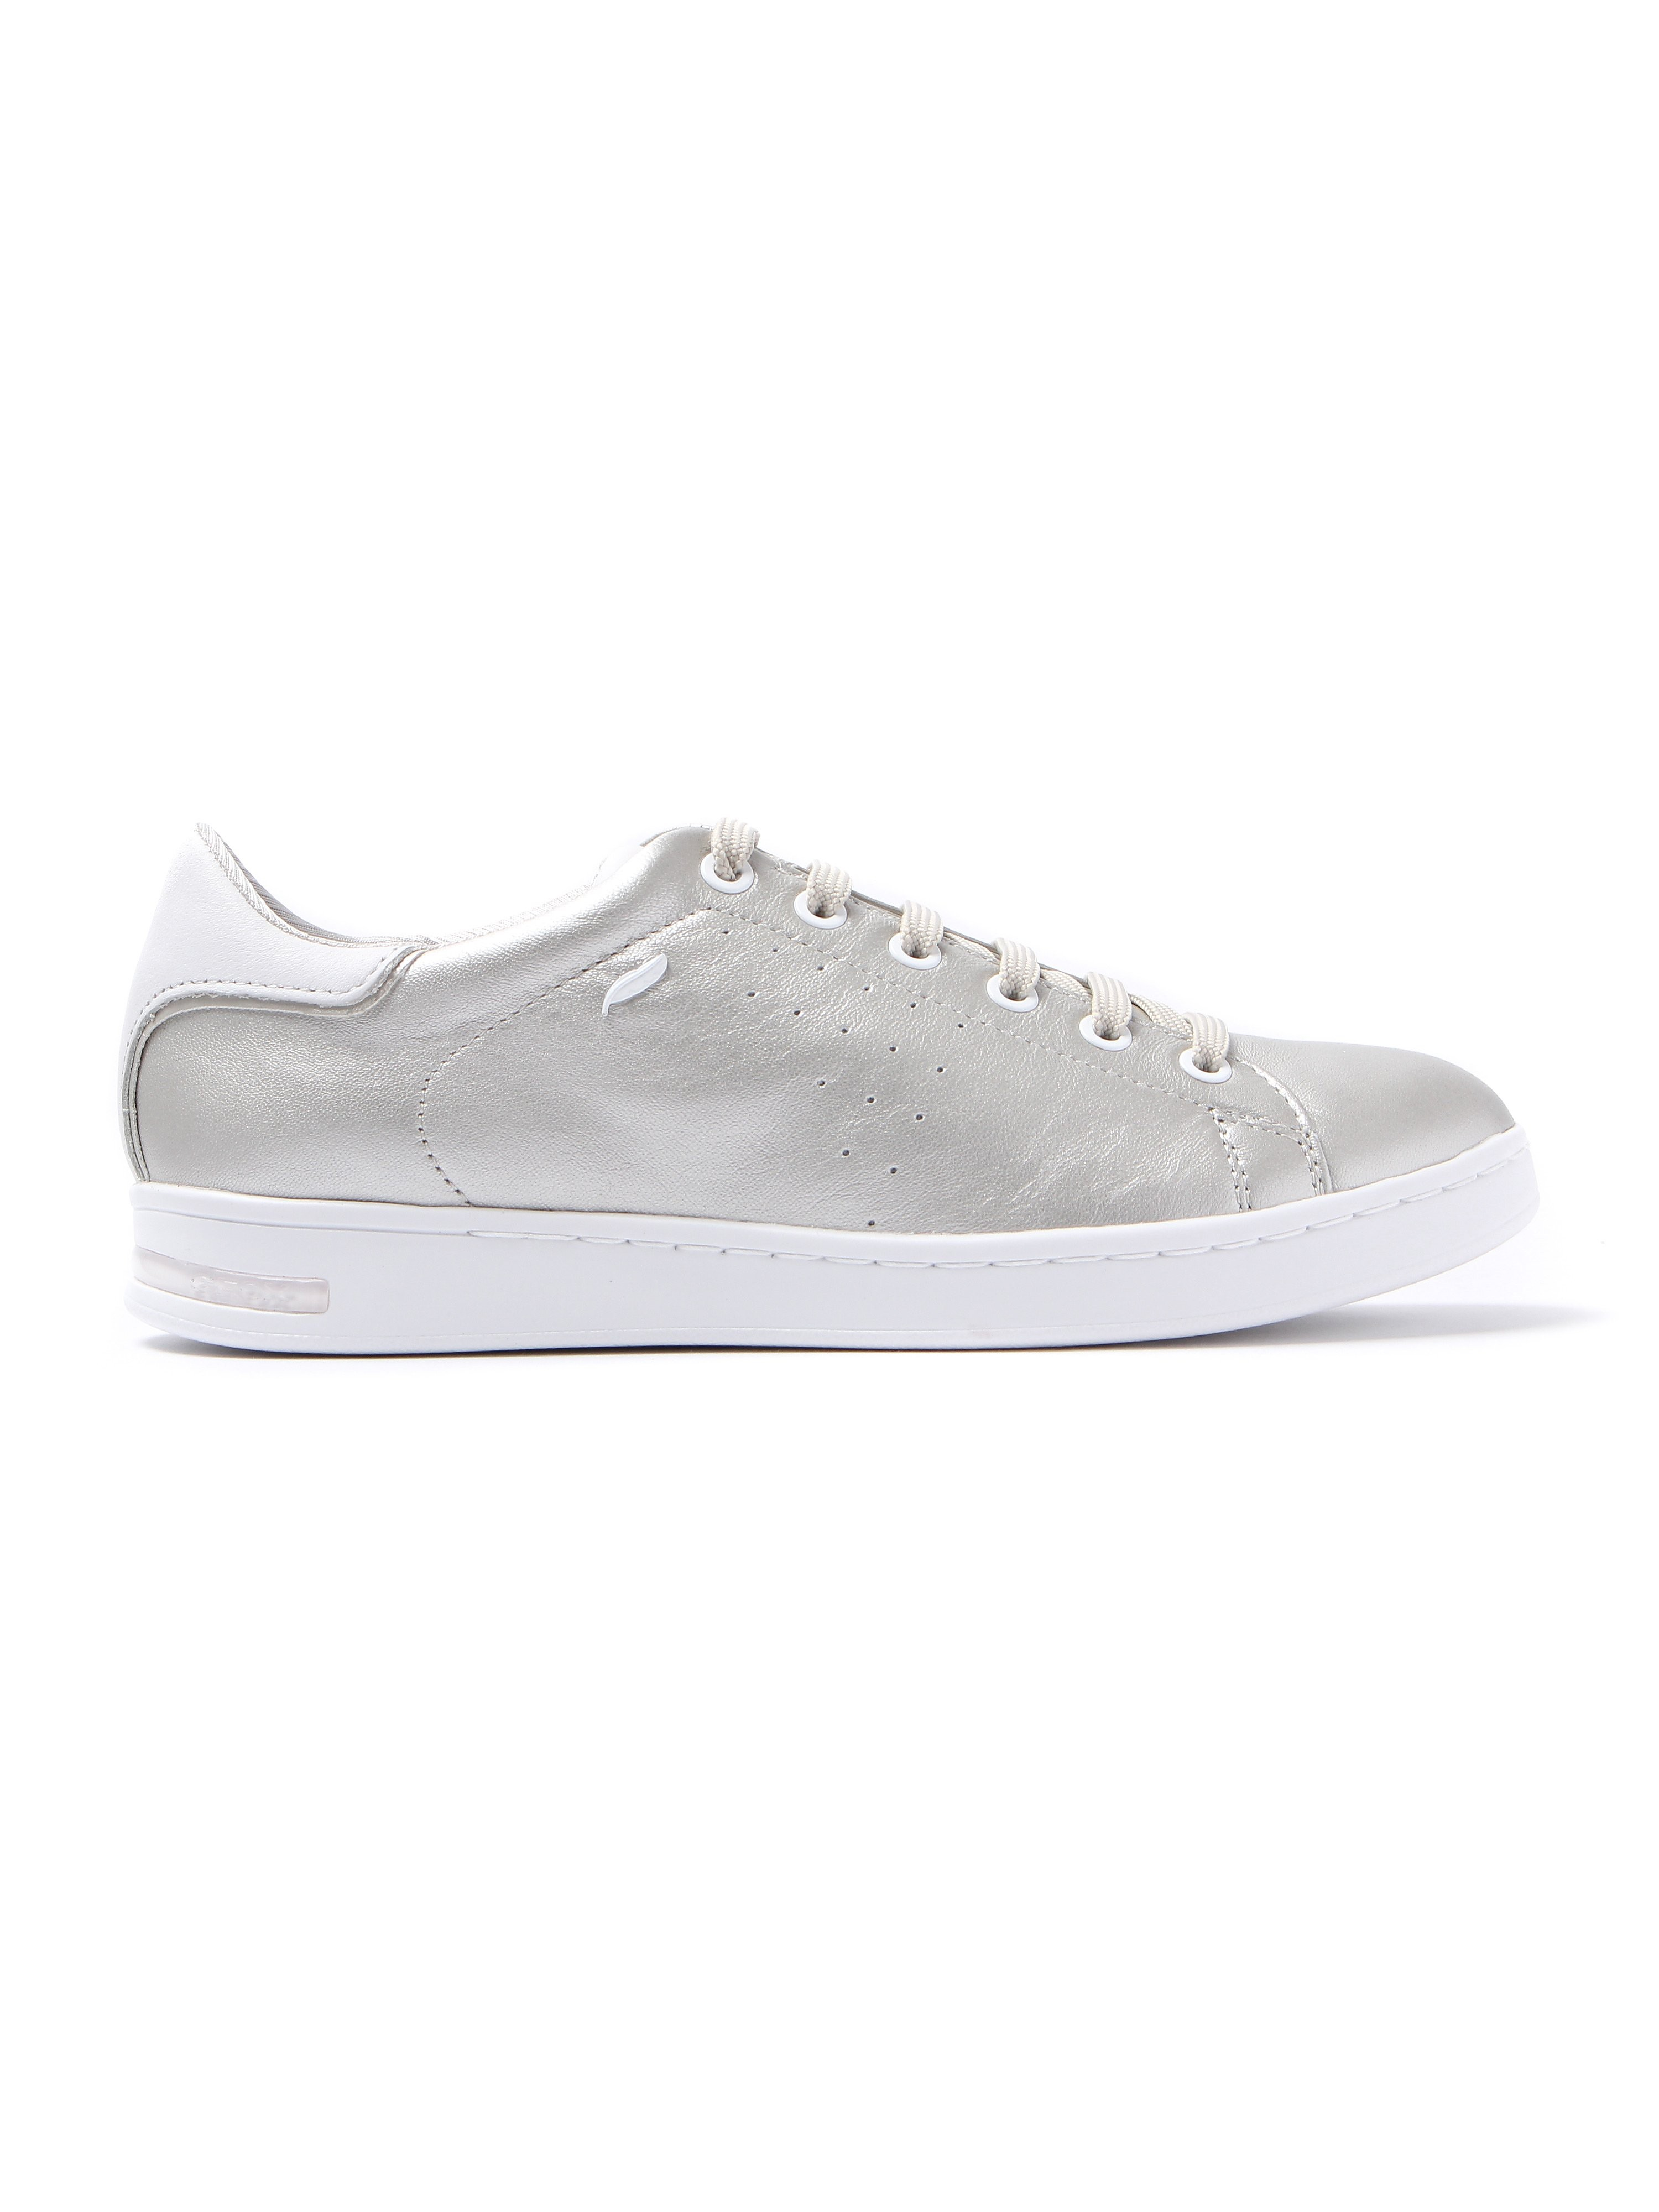 Geox Women's Jaysen Metallic Leather Trainers - Platinum